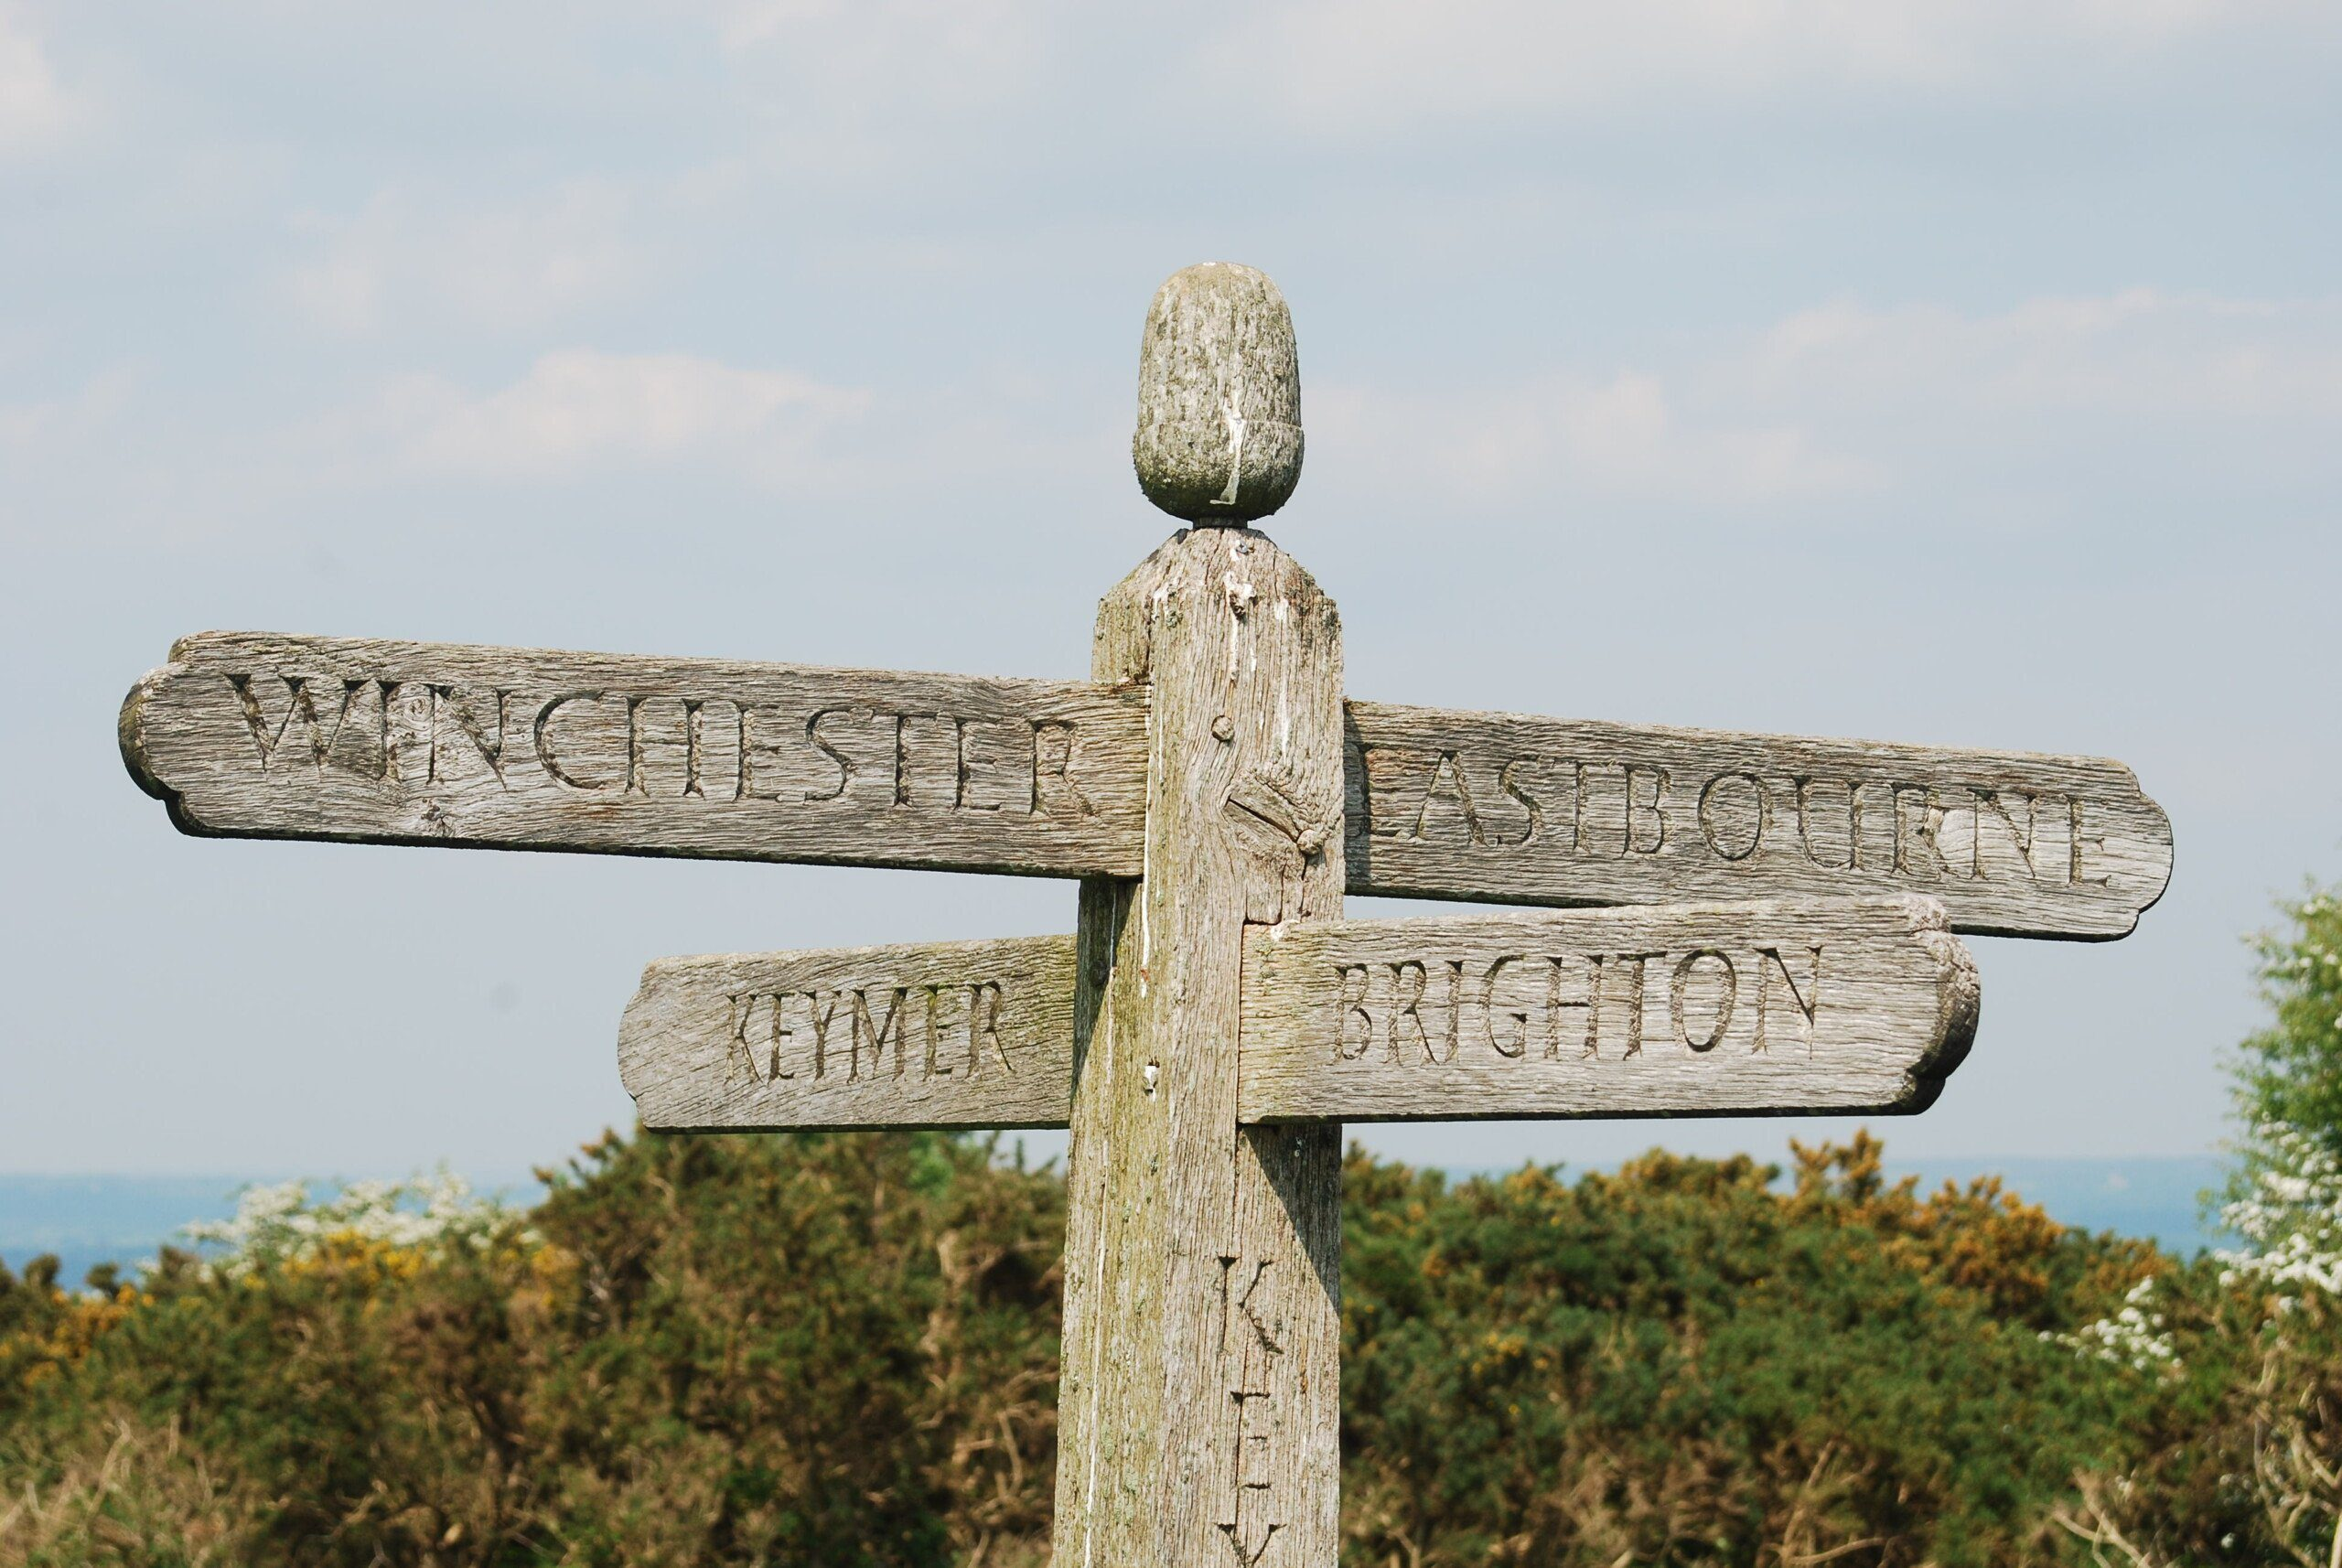 South Downs Way: Old wooden signpost pointing the way to Keymer, Brighton, Winchester and Eastbourne